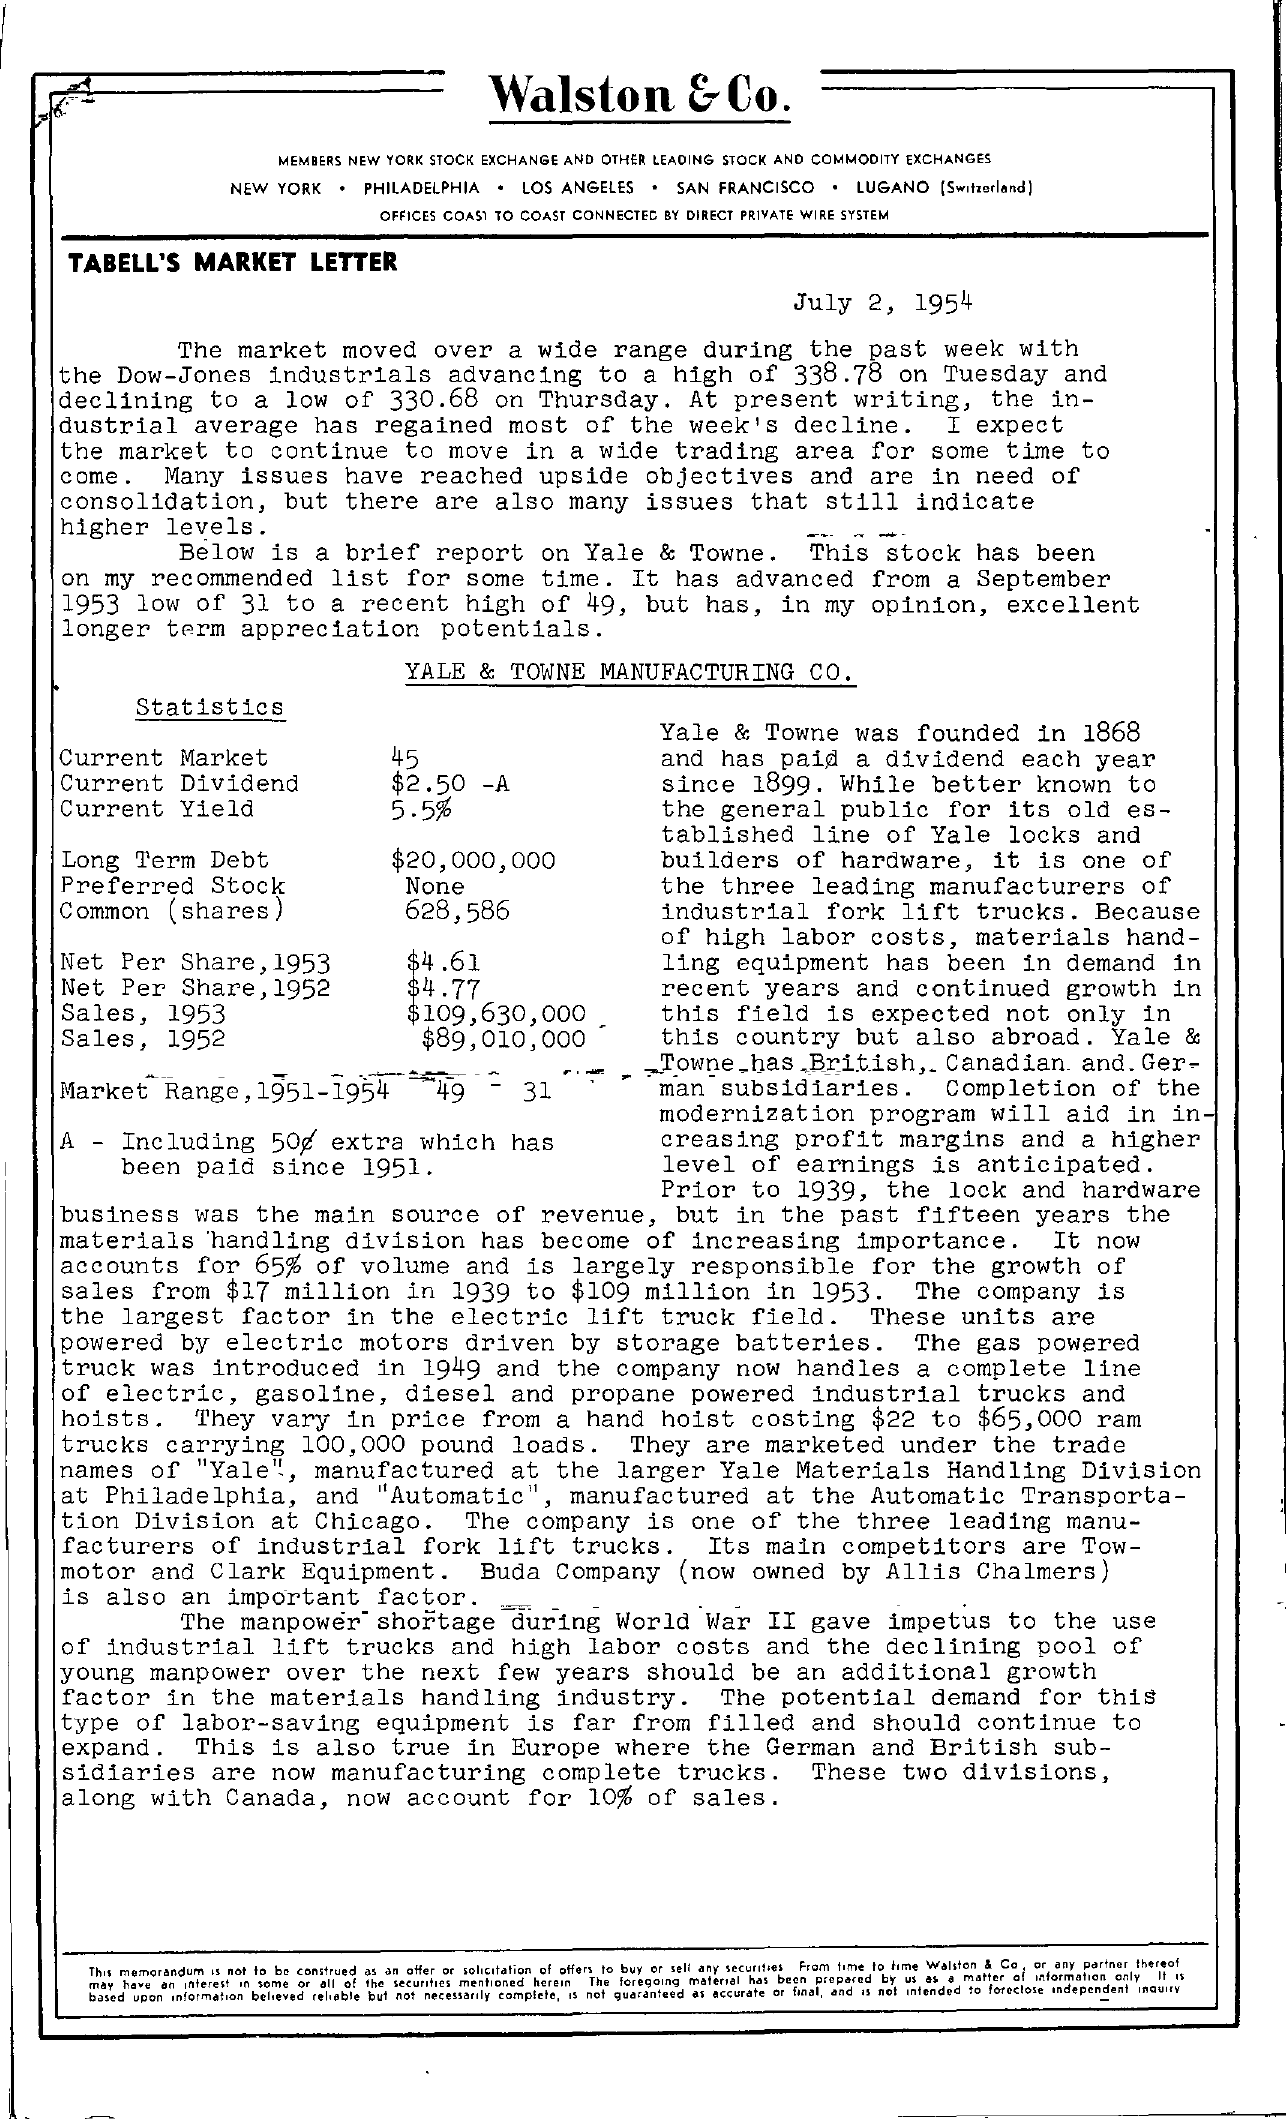 Tabell's Market Letter - July 02, 1954 page 1